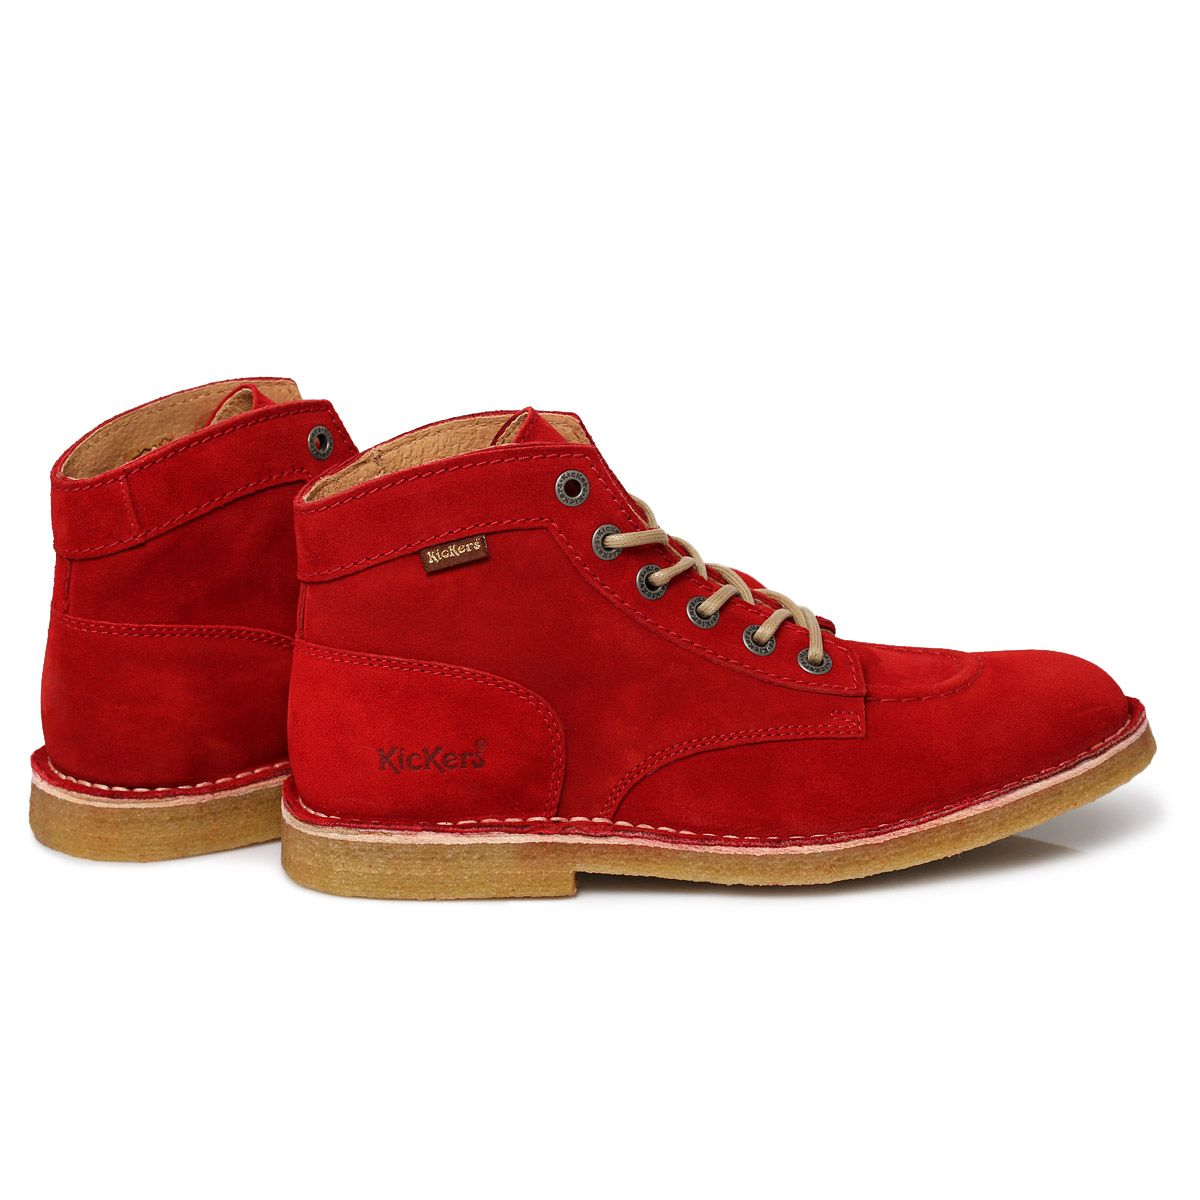 e5105fdd66512a kickers shoes london men | Kickers -Red-Kick-Legend-Suede-Mens-Knee-Hiigh-Boots-Shoes-Size-7-11